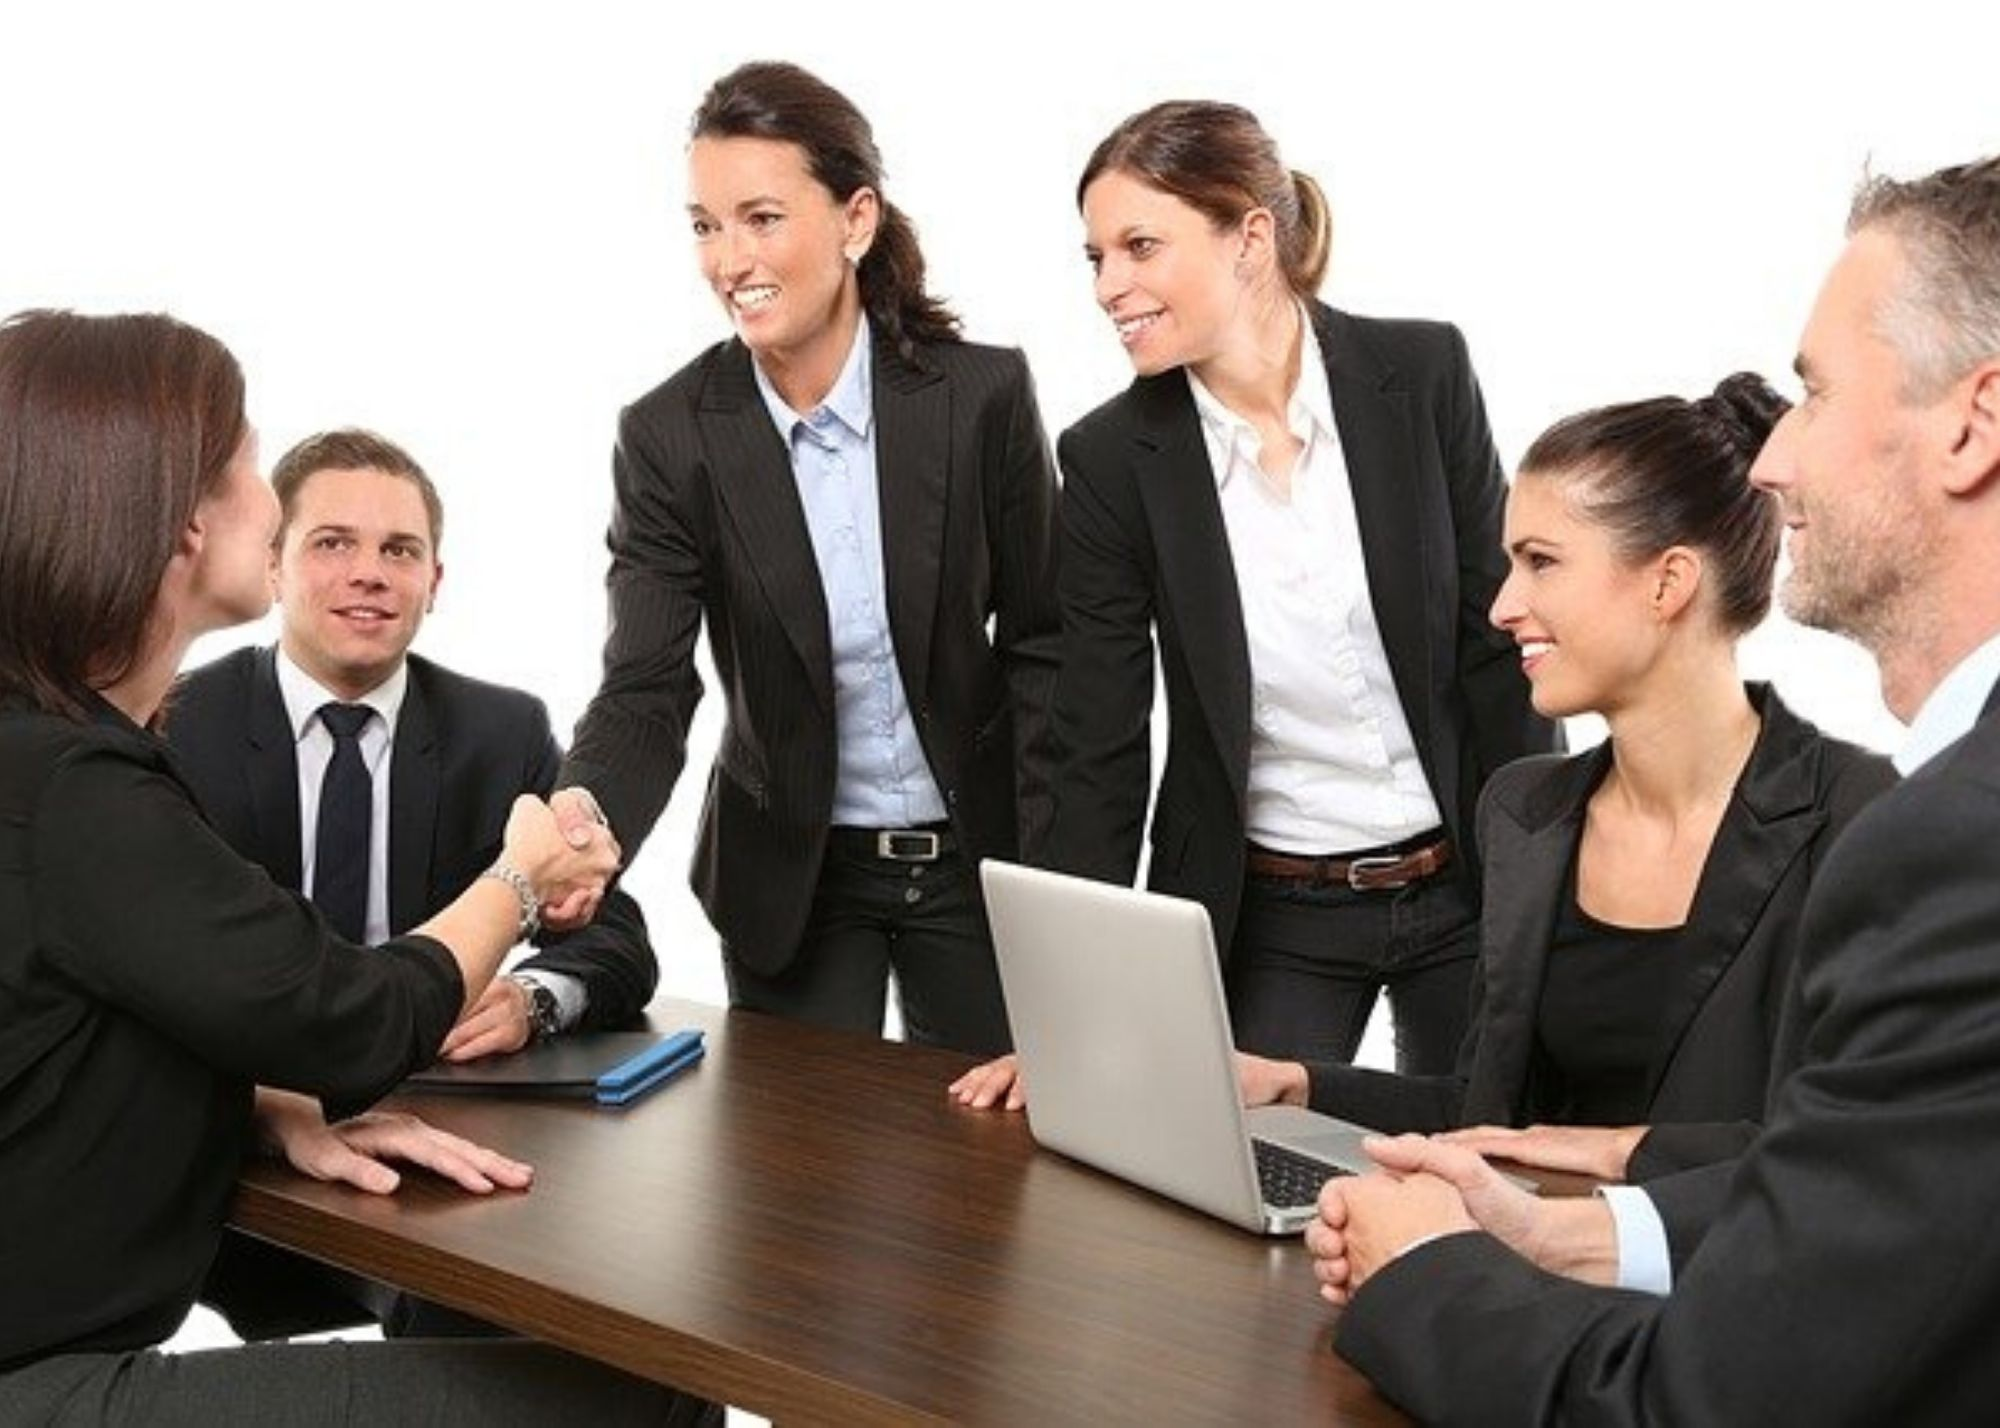 How To Make A Good Impression On An Interview - People Shaking Hands